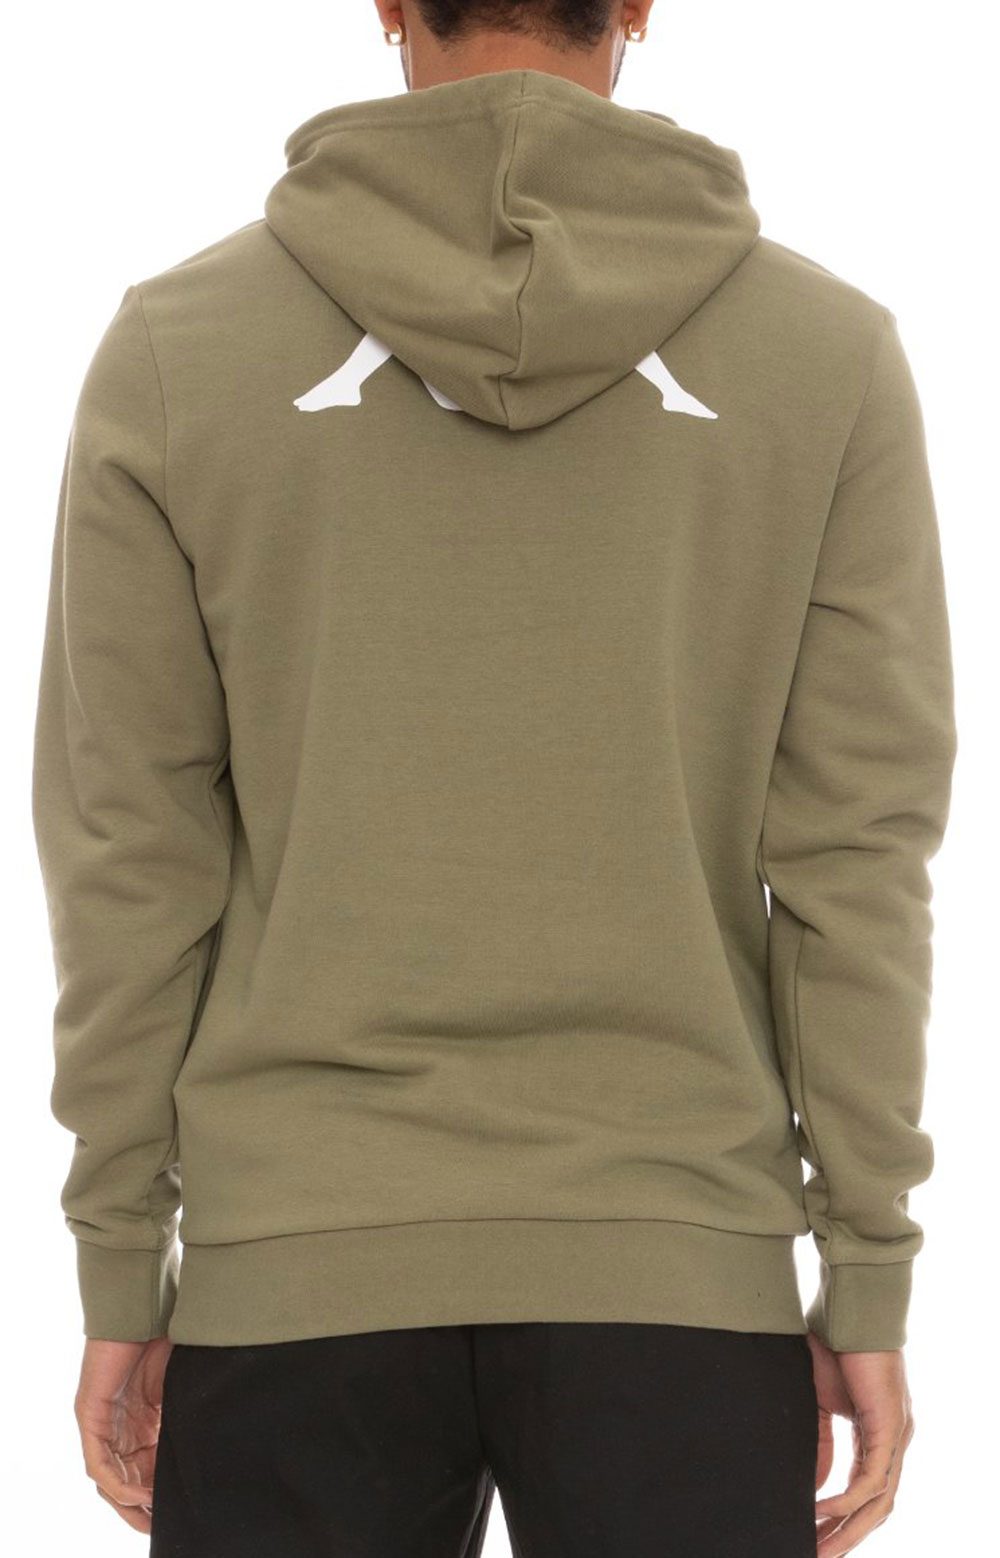 Authentic Haris Pullover Hoodie - Olive Green/Light Green/White  5